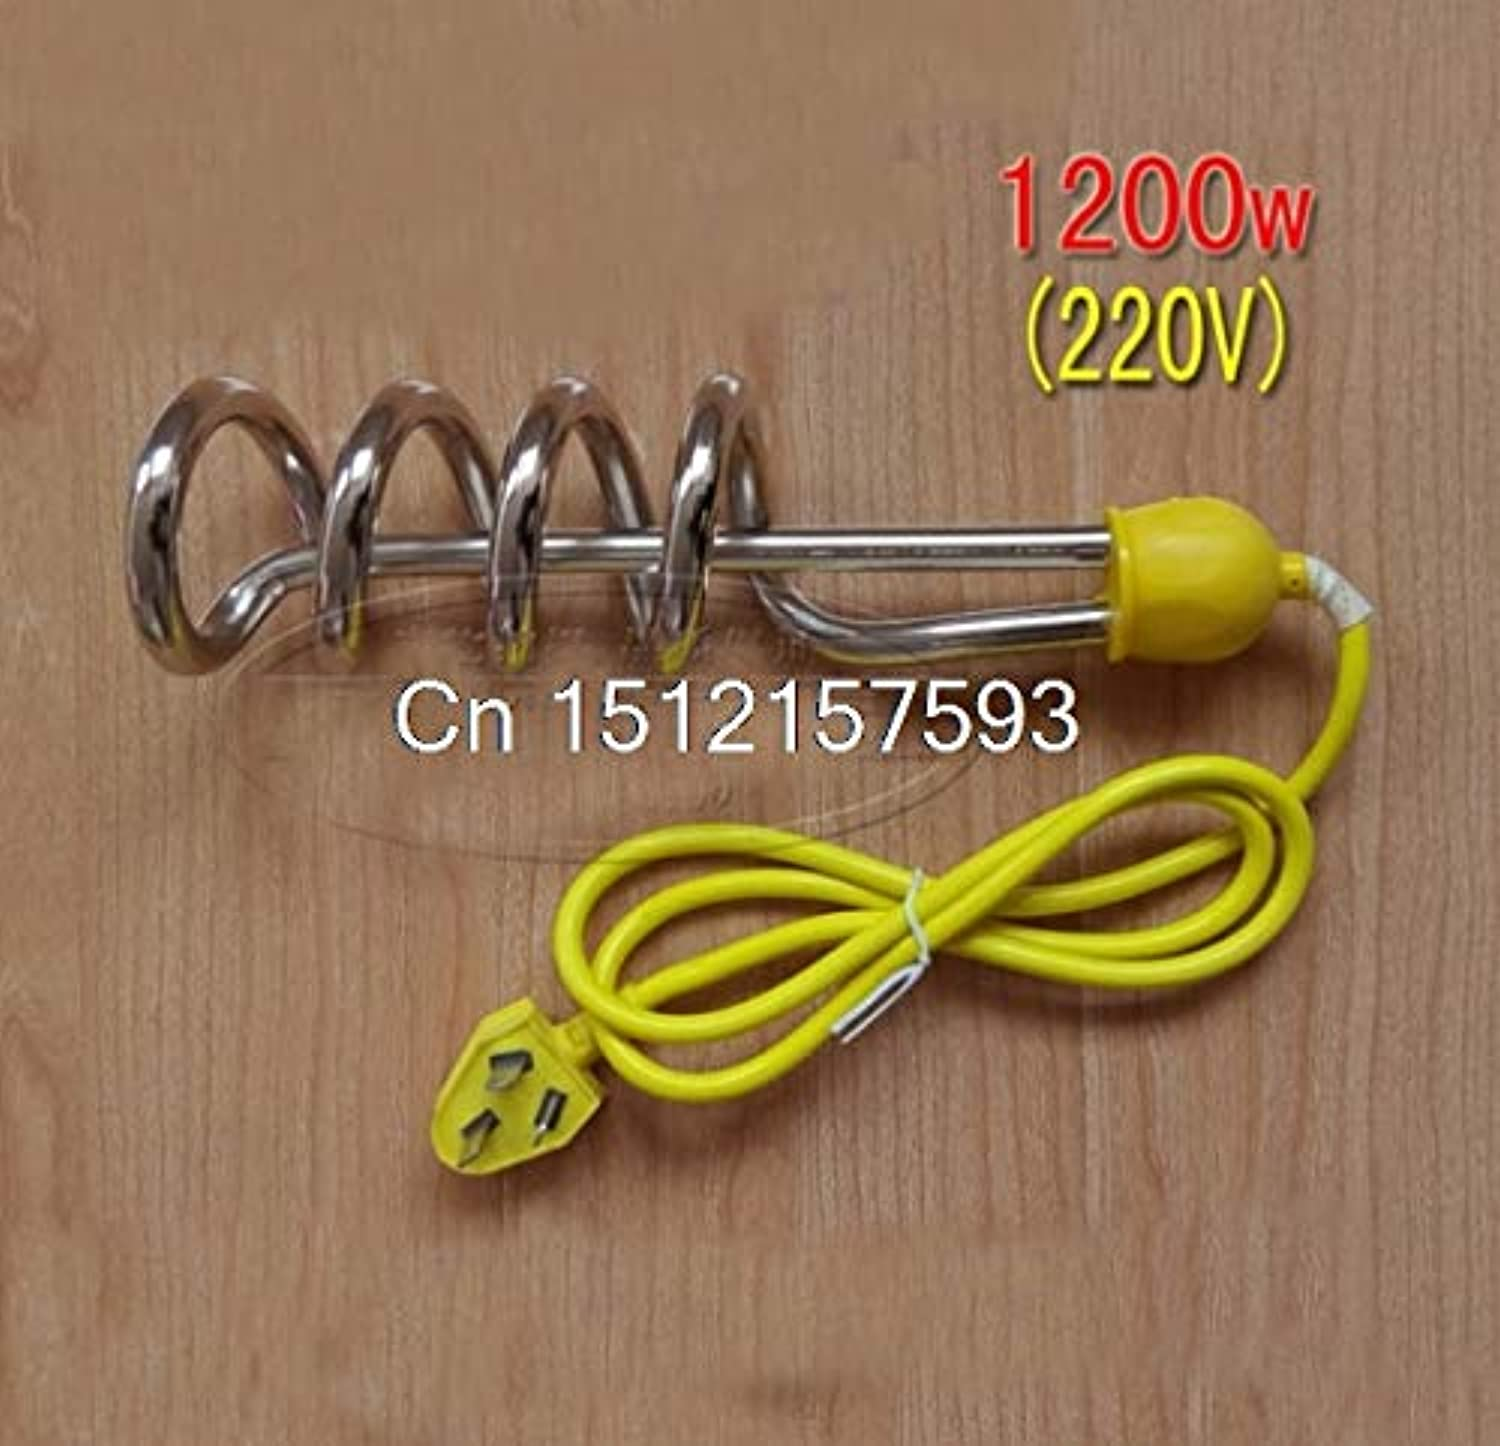 220V Metal Electric Plug Power 250V 6A 1200W Immersion Heater Heating Element Yellow 3 Pins Plug